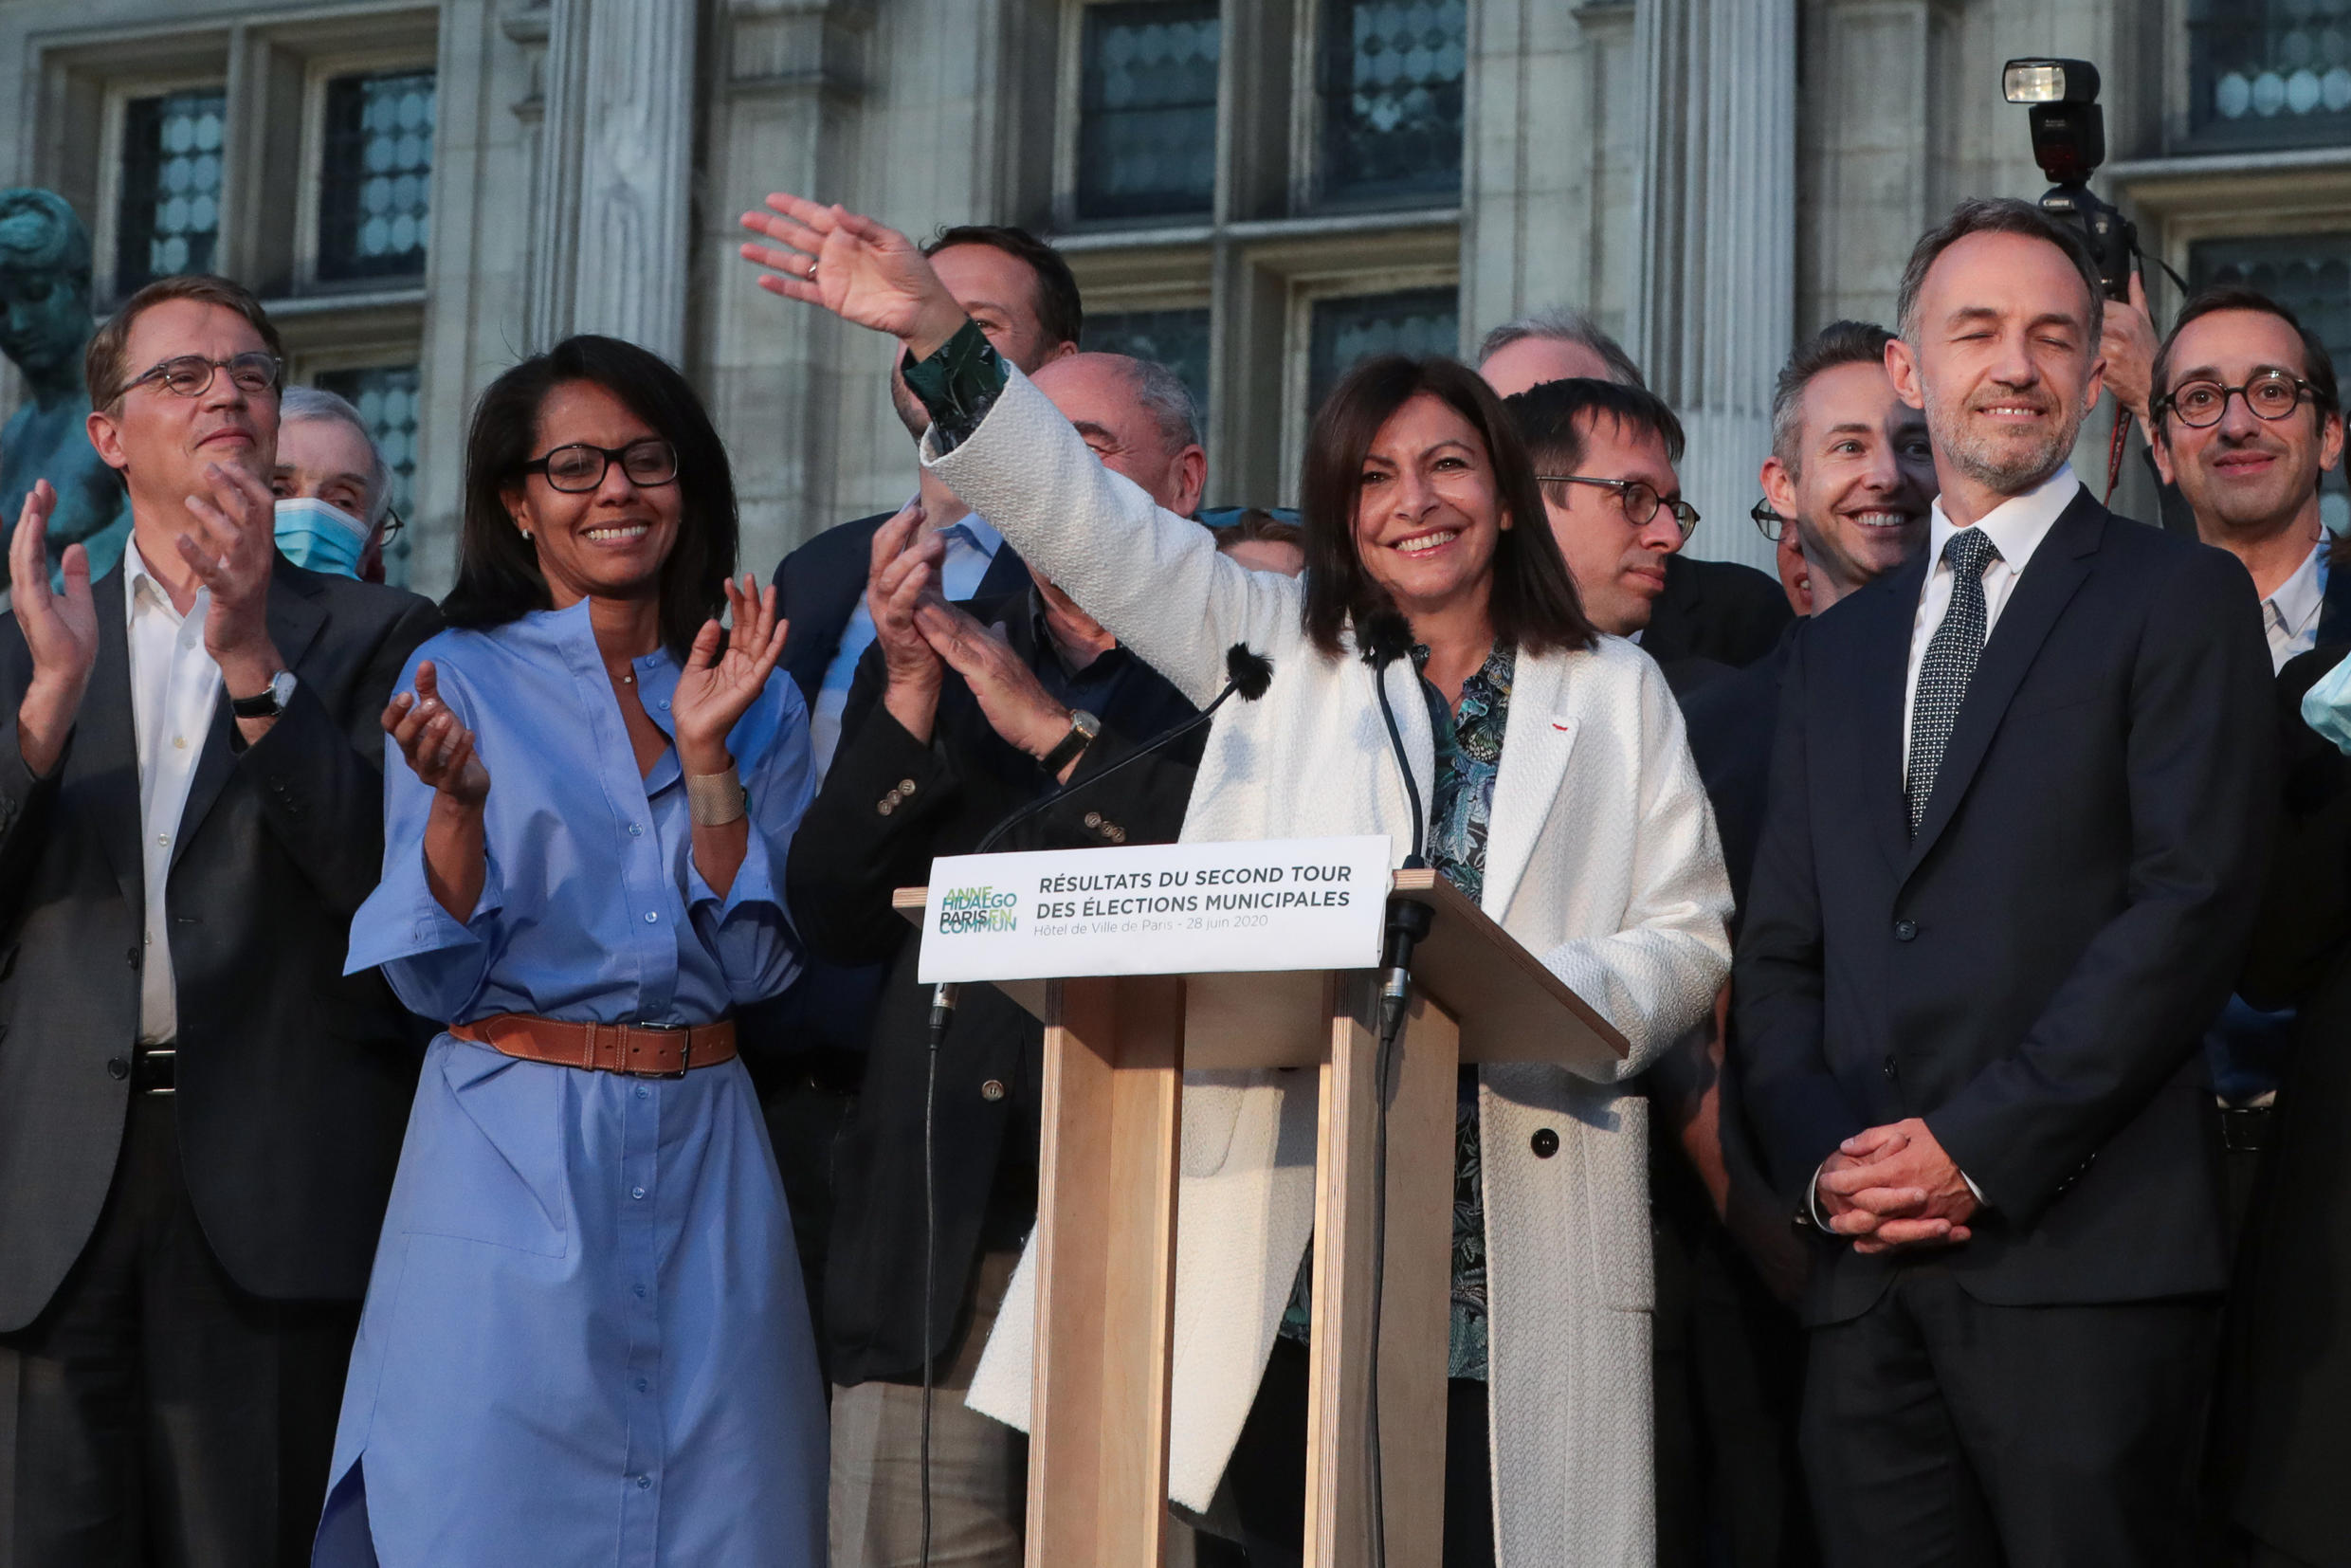 A victorious Anne Hidalgo after being elected to another term as Paris mayor